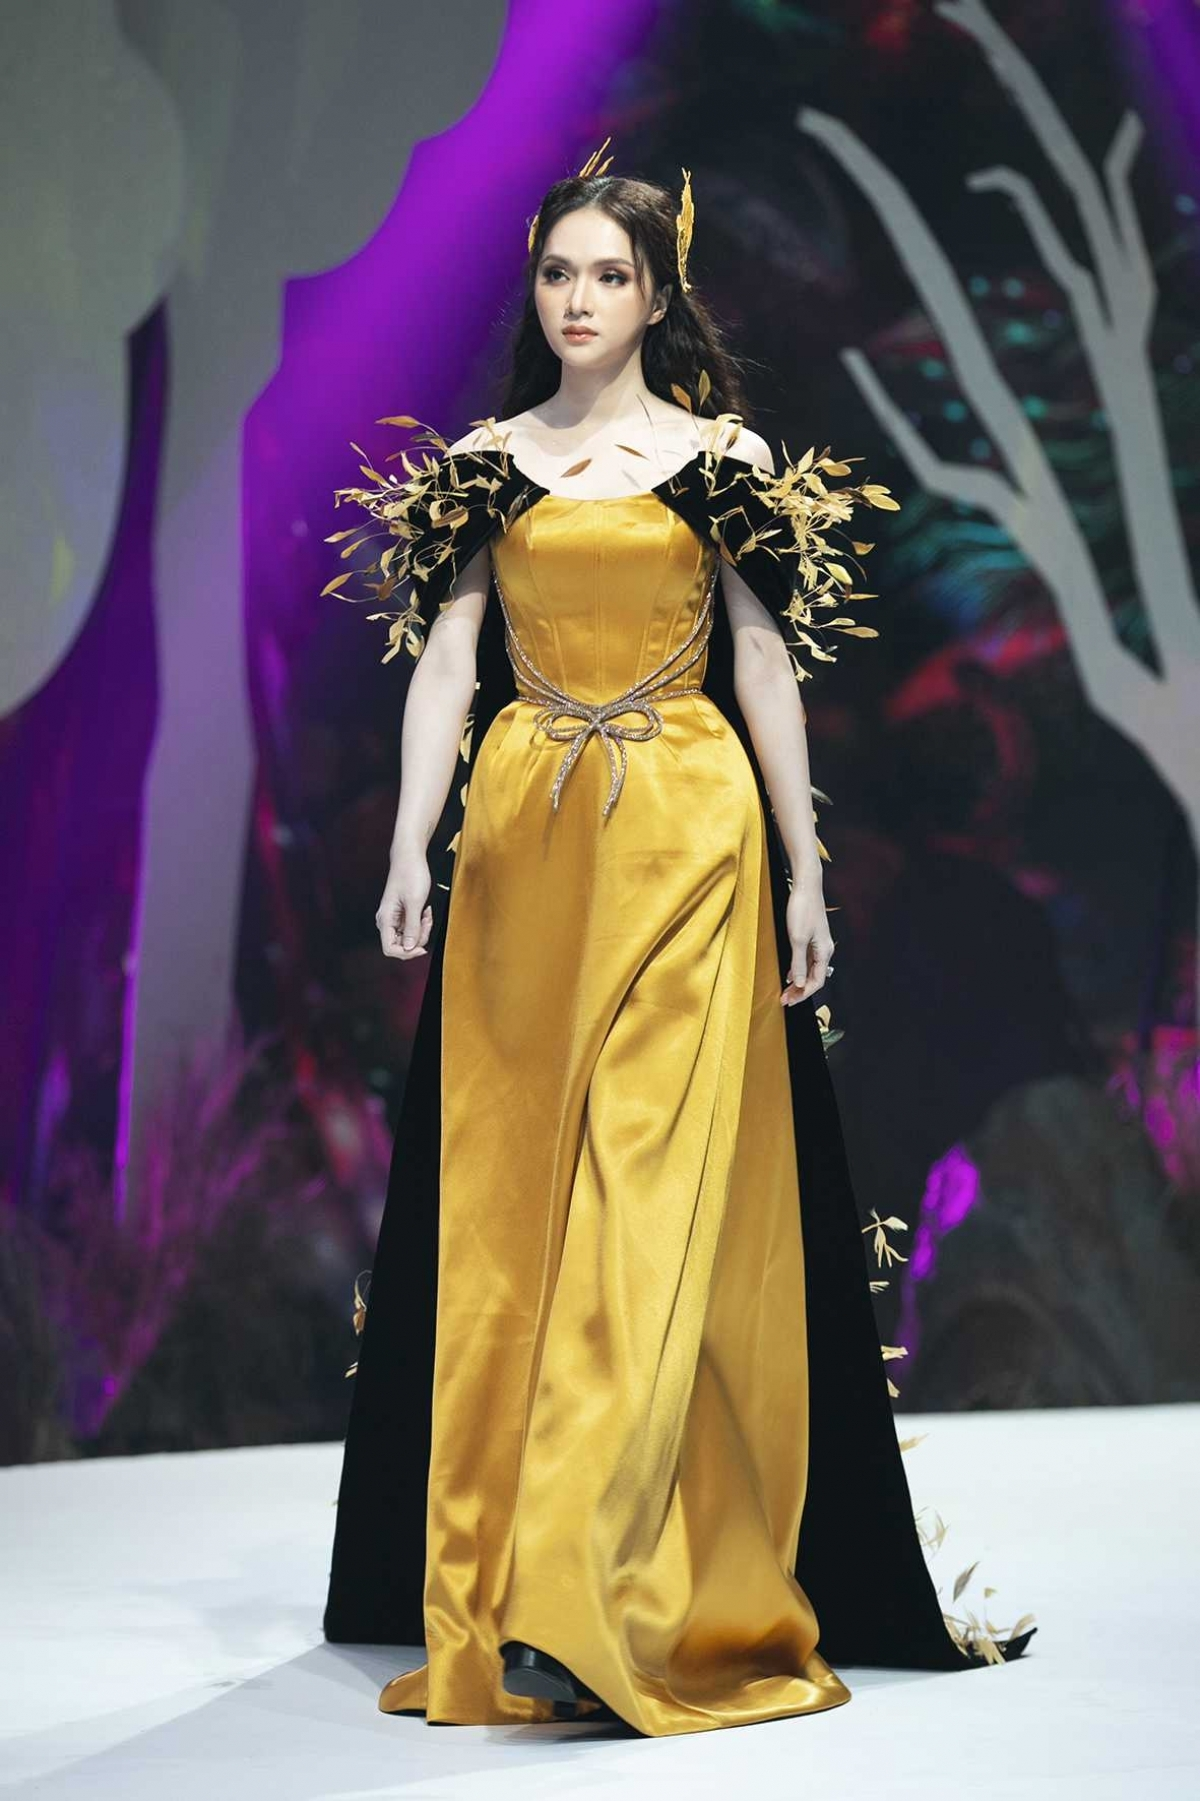 Huong Giang, Miss International Queen 2018, looks graceful while serving as vedette of the show.